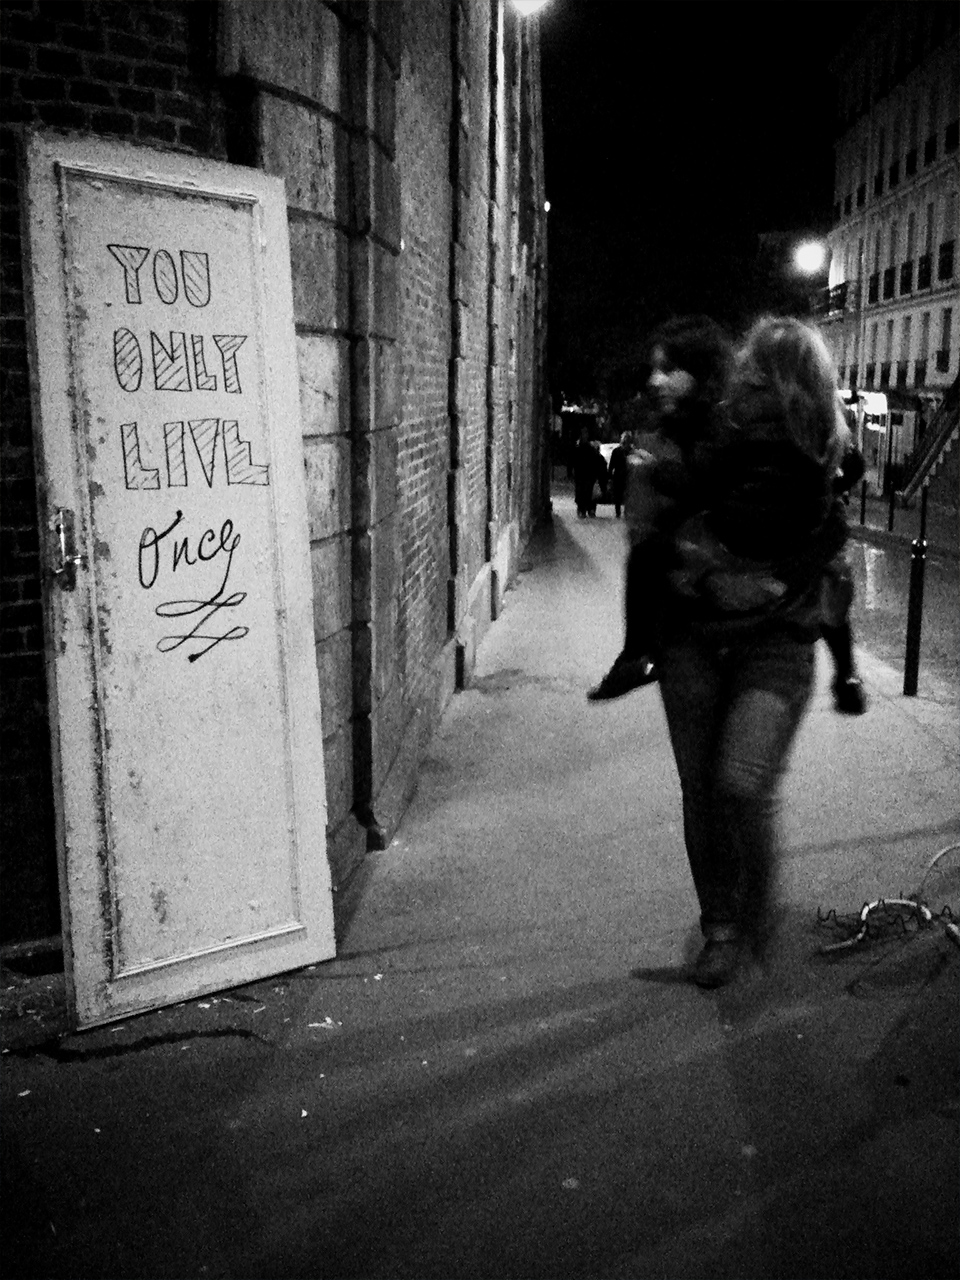 the_street_of_life_by_camilo_rojas_paris (3)_o.jpg